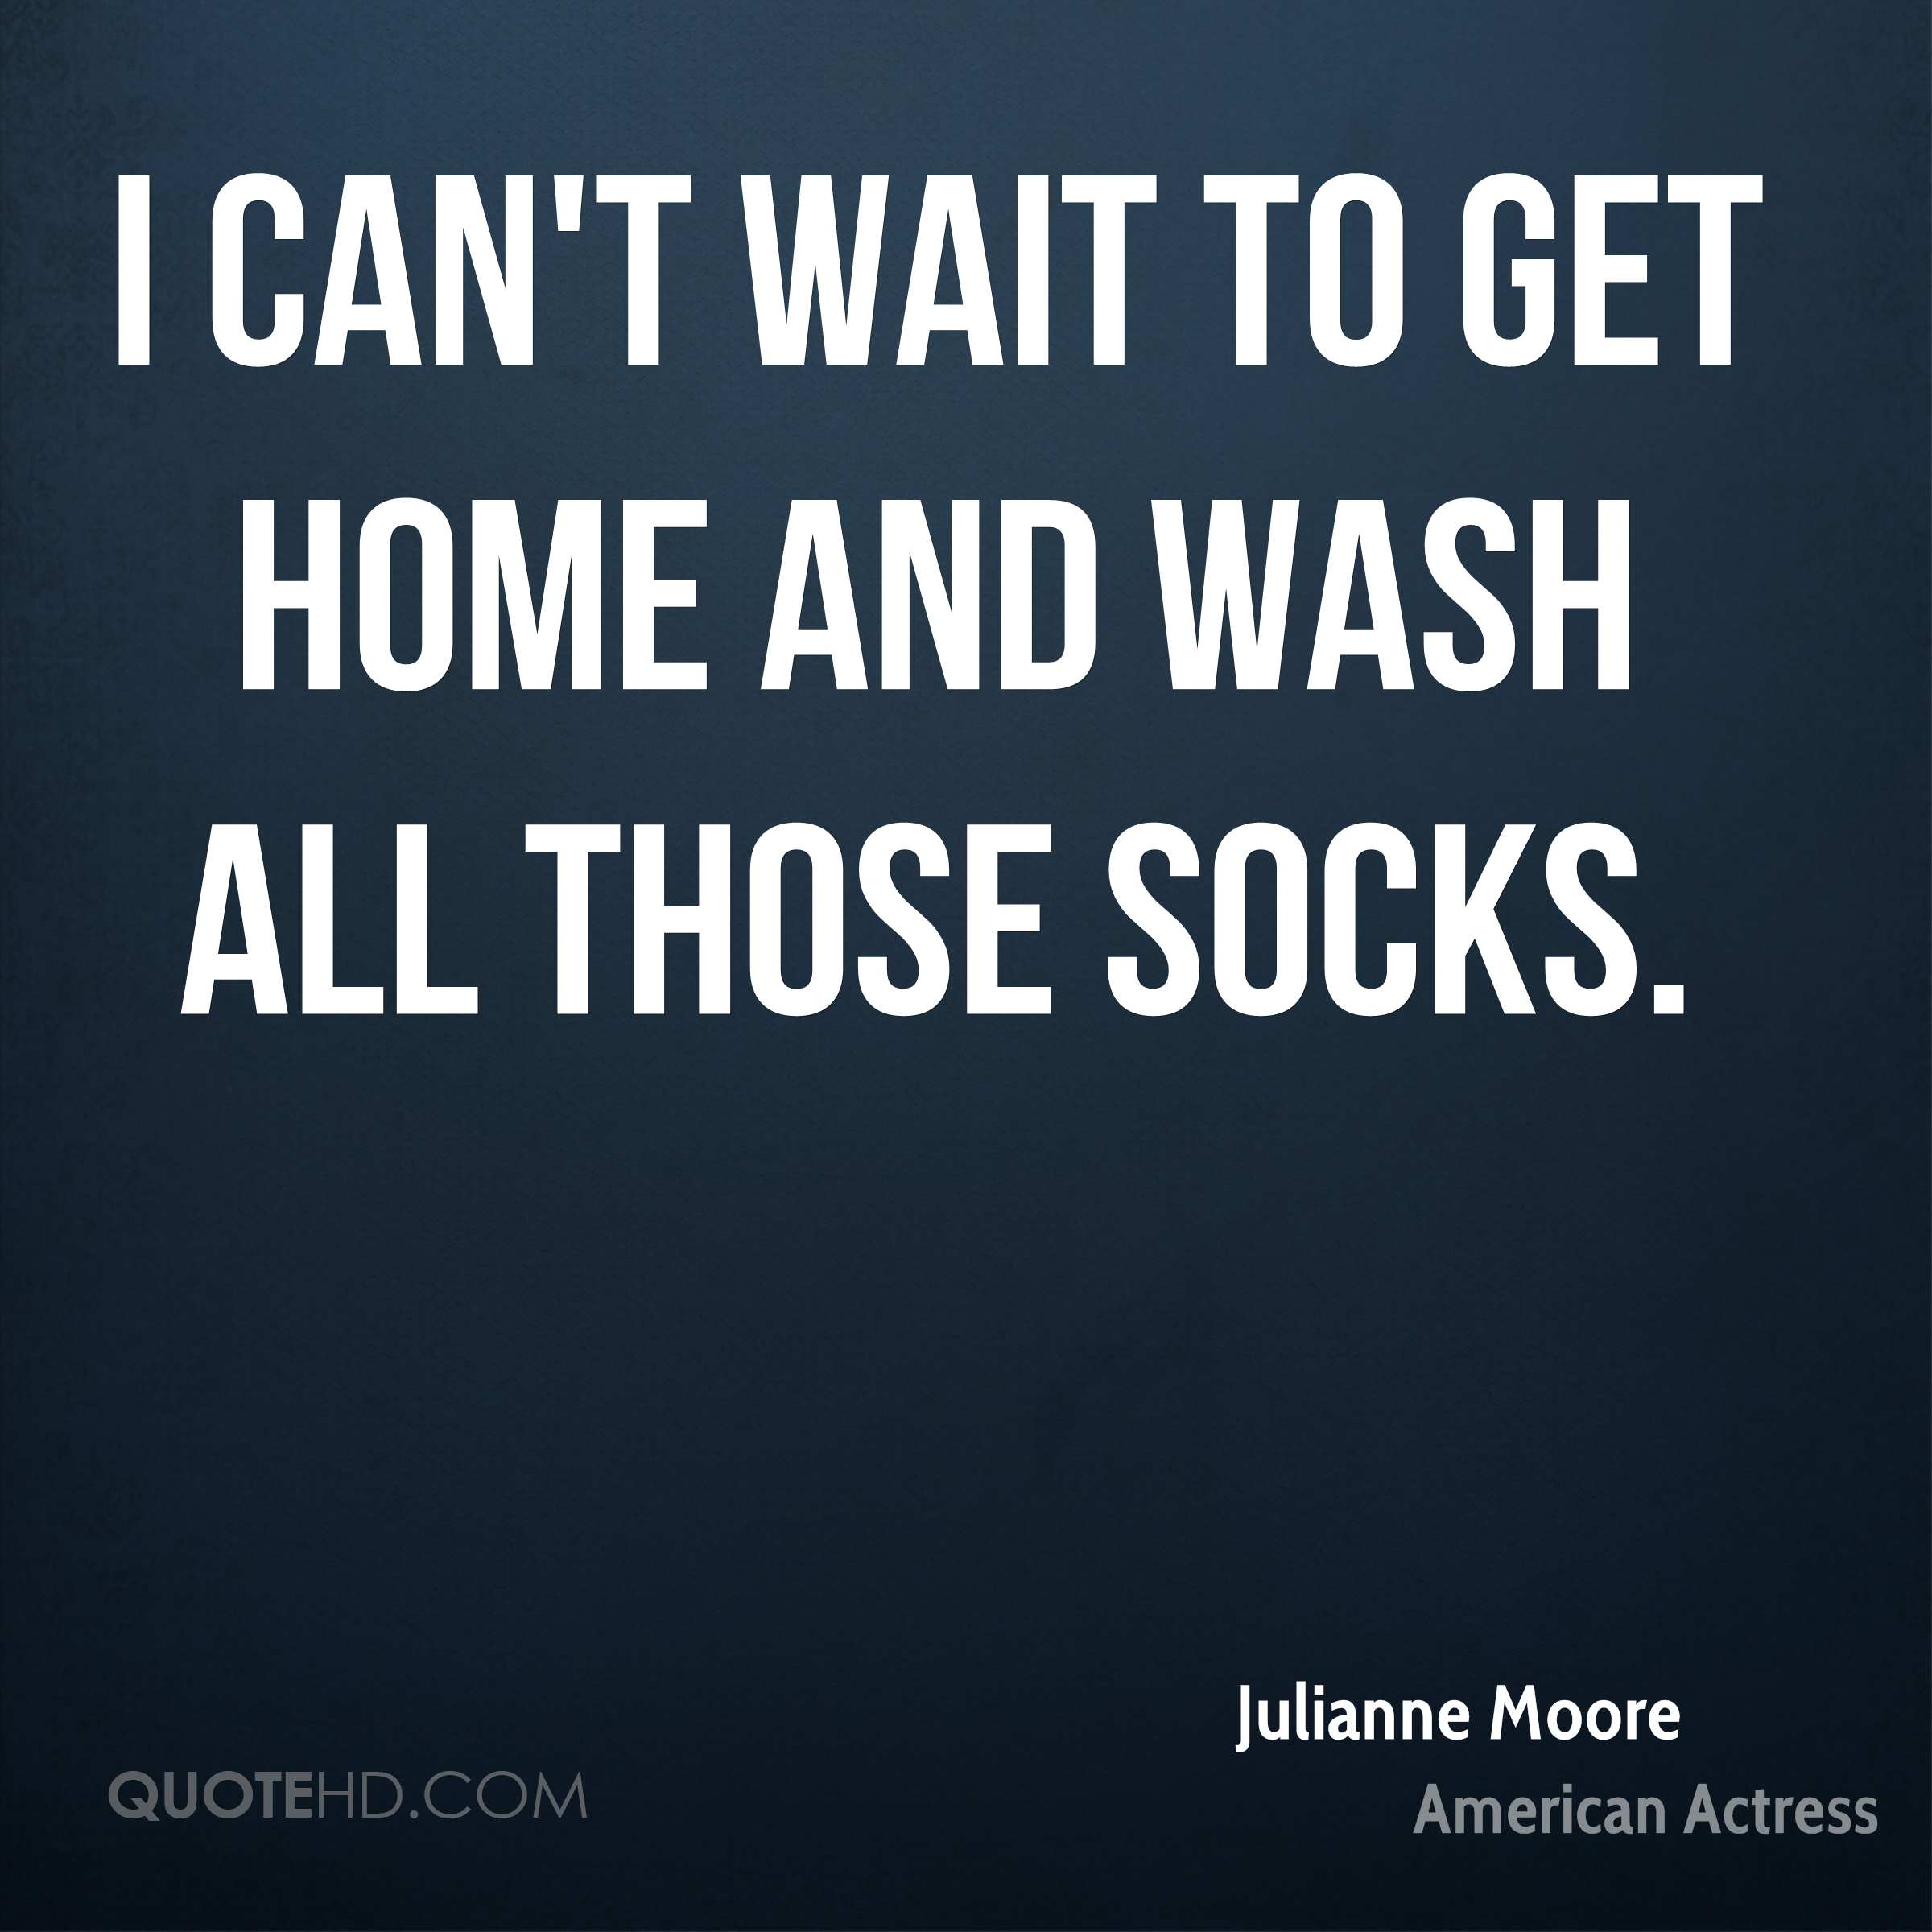 I can't wait to get home and wash all those socks.